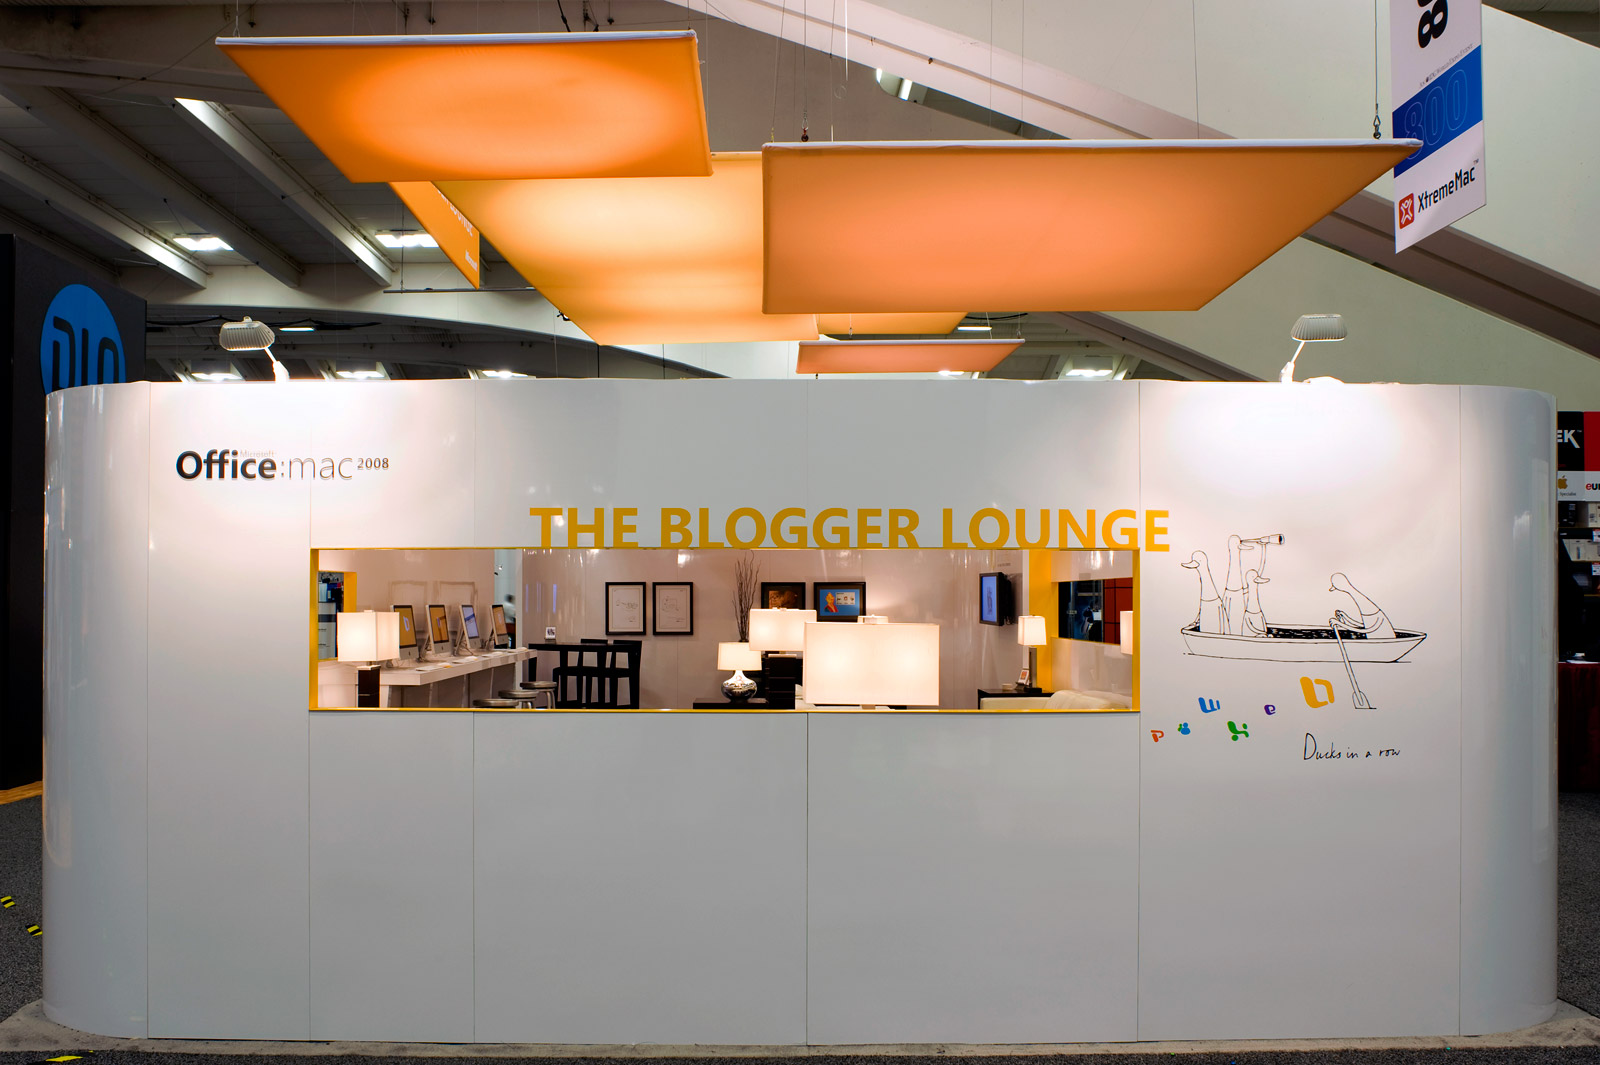 The-Blogger-Lounge-exterior-2_med.jpg